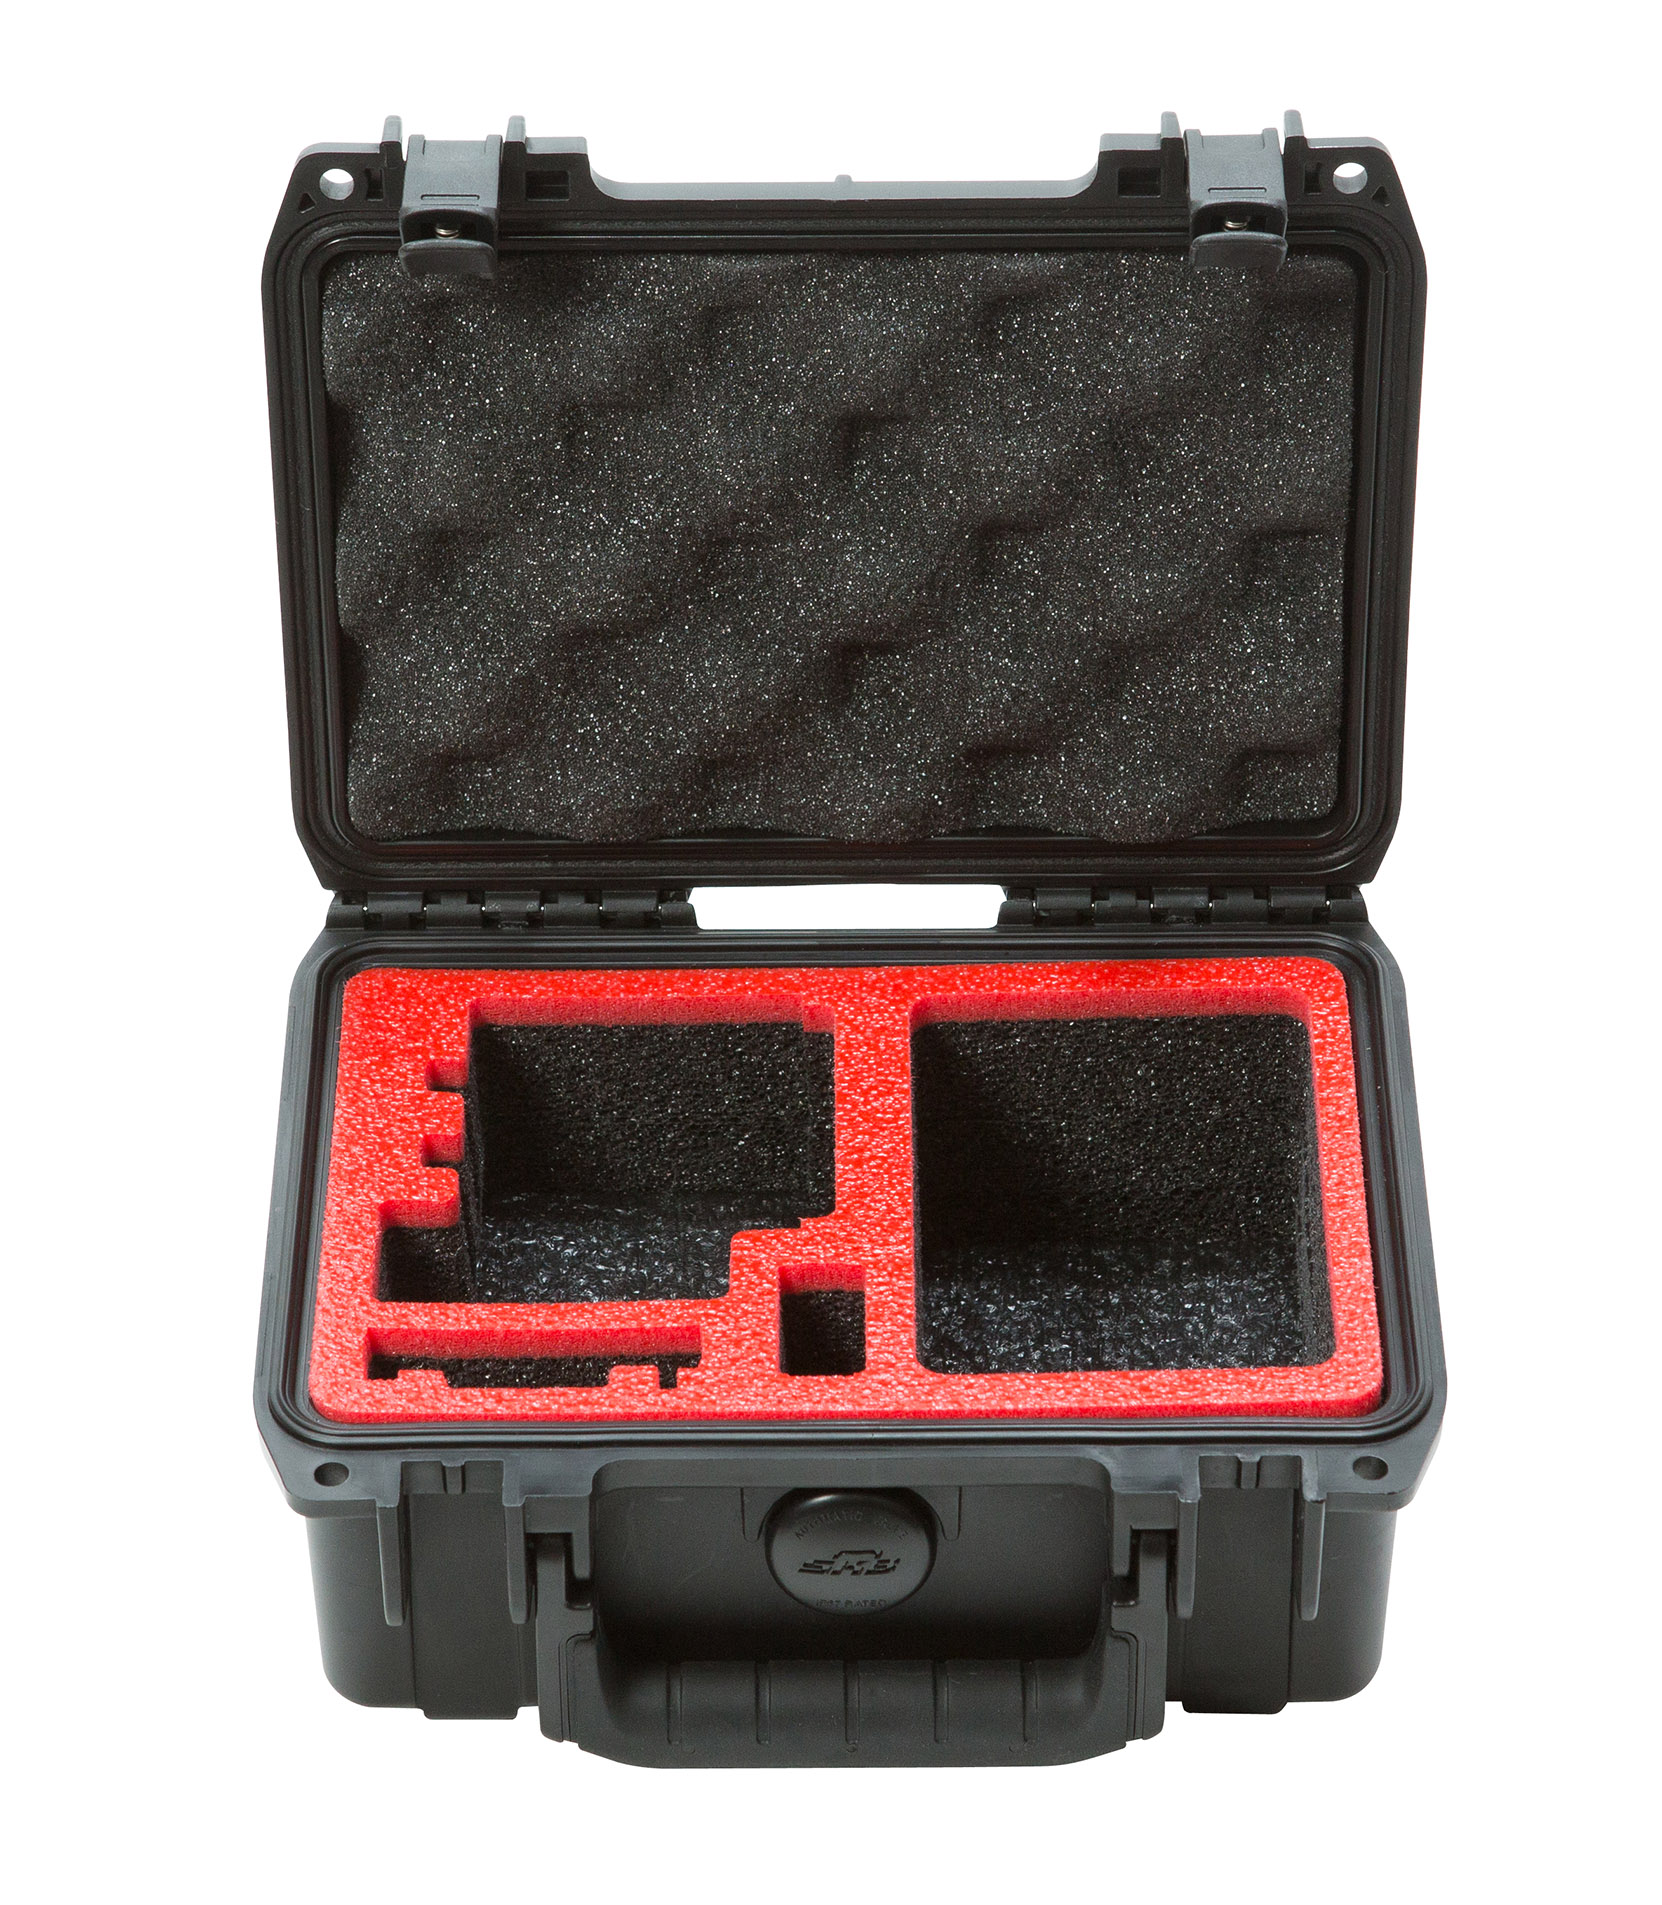 Buy SKB - 3I 0705 3GP1 iSeries Single GoPro Camera Case